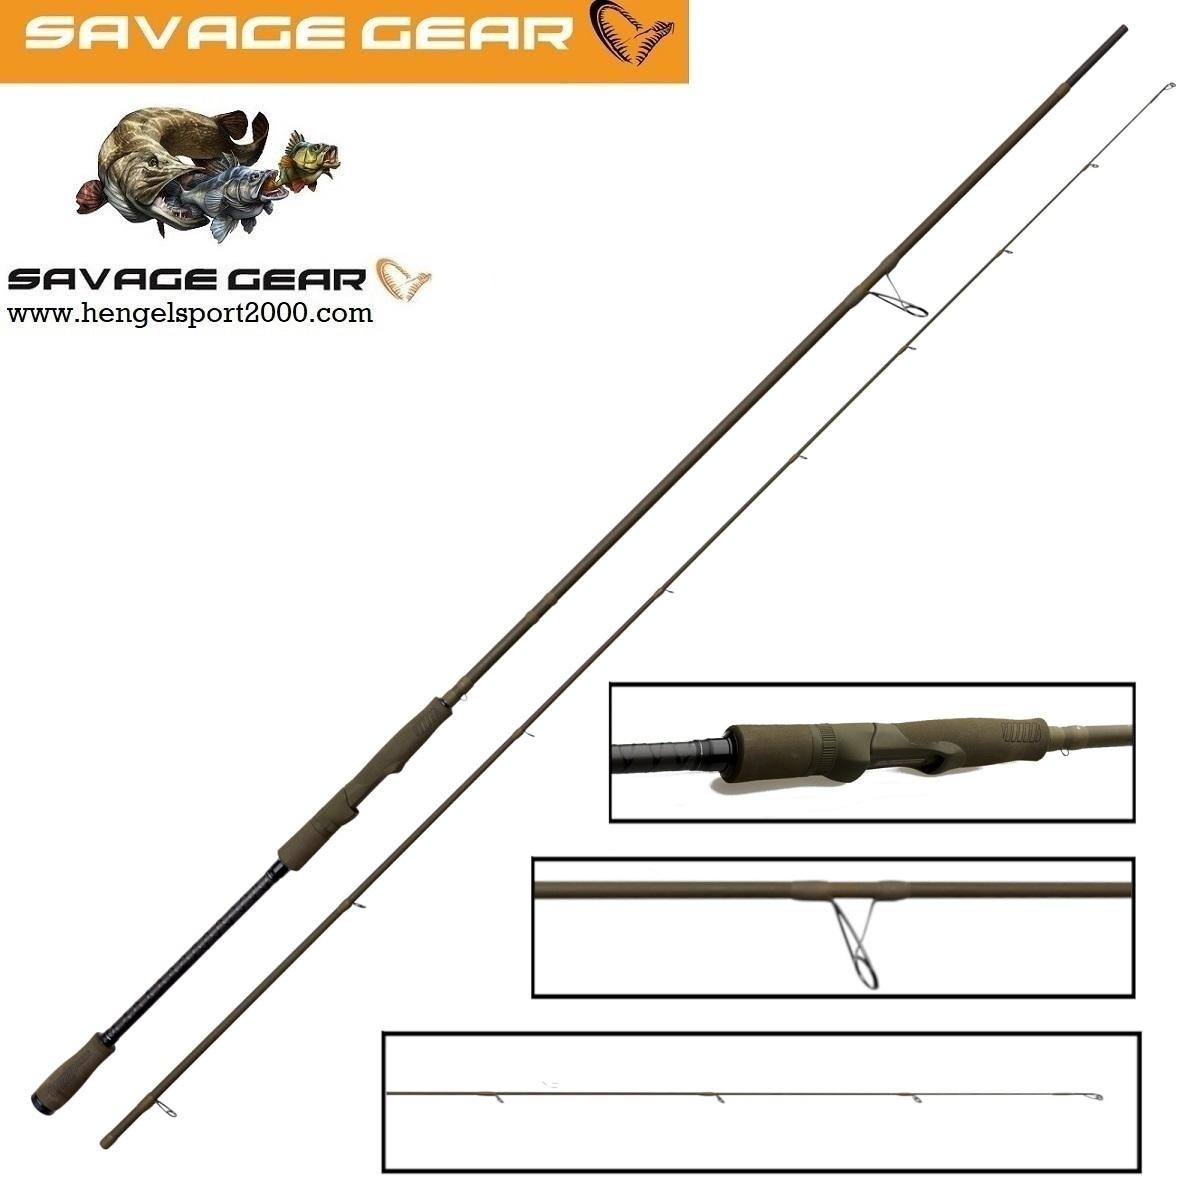 Savage Gear SG4 Power Game Rod 221 cm 50 - 100 gram